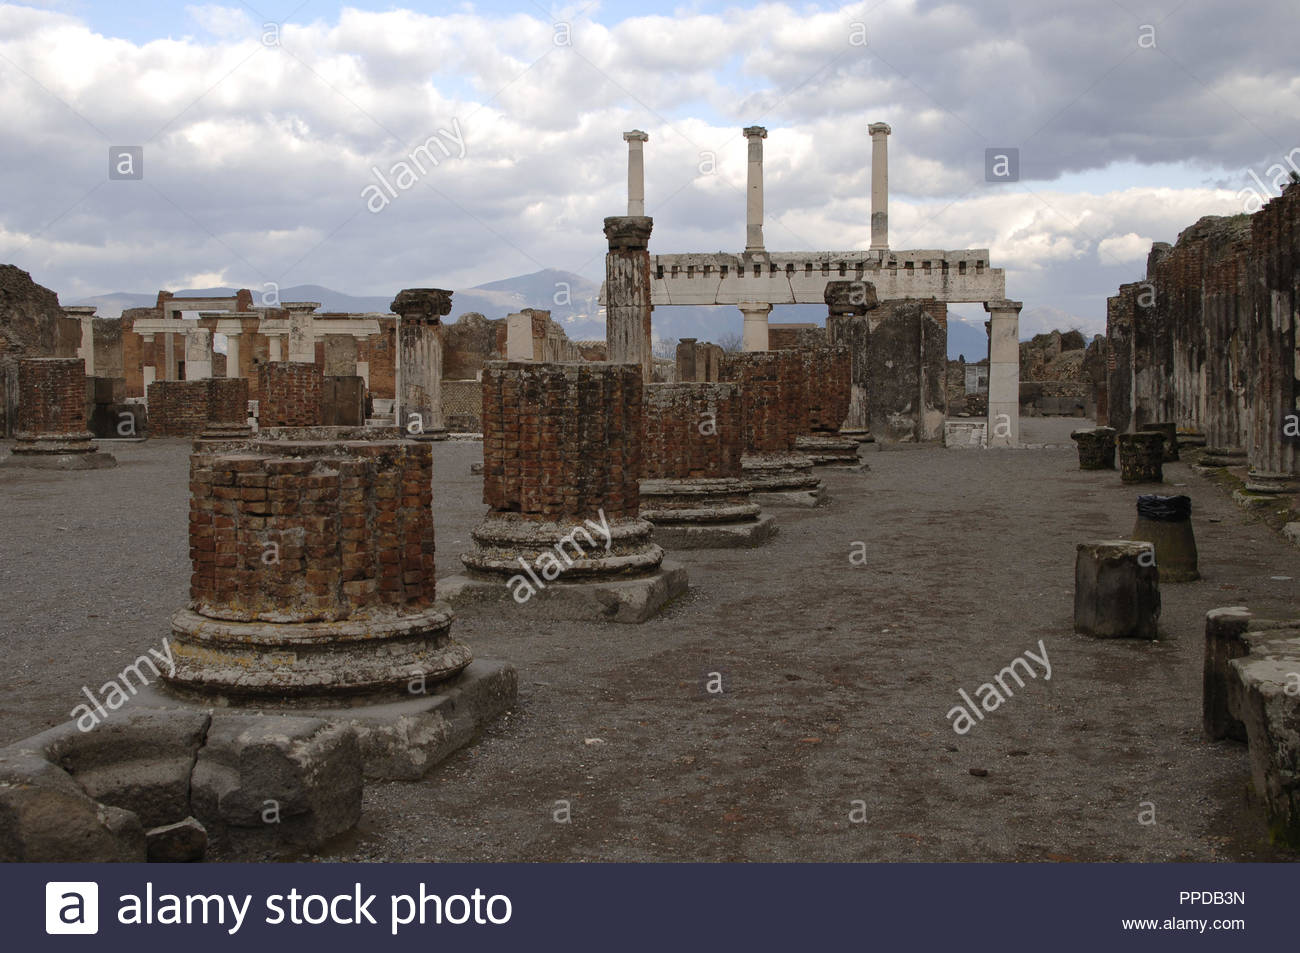 Italy Pompeii Ruins of the Basilica late 2nd century BC In 1300x953